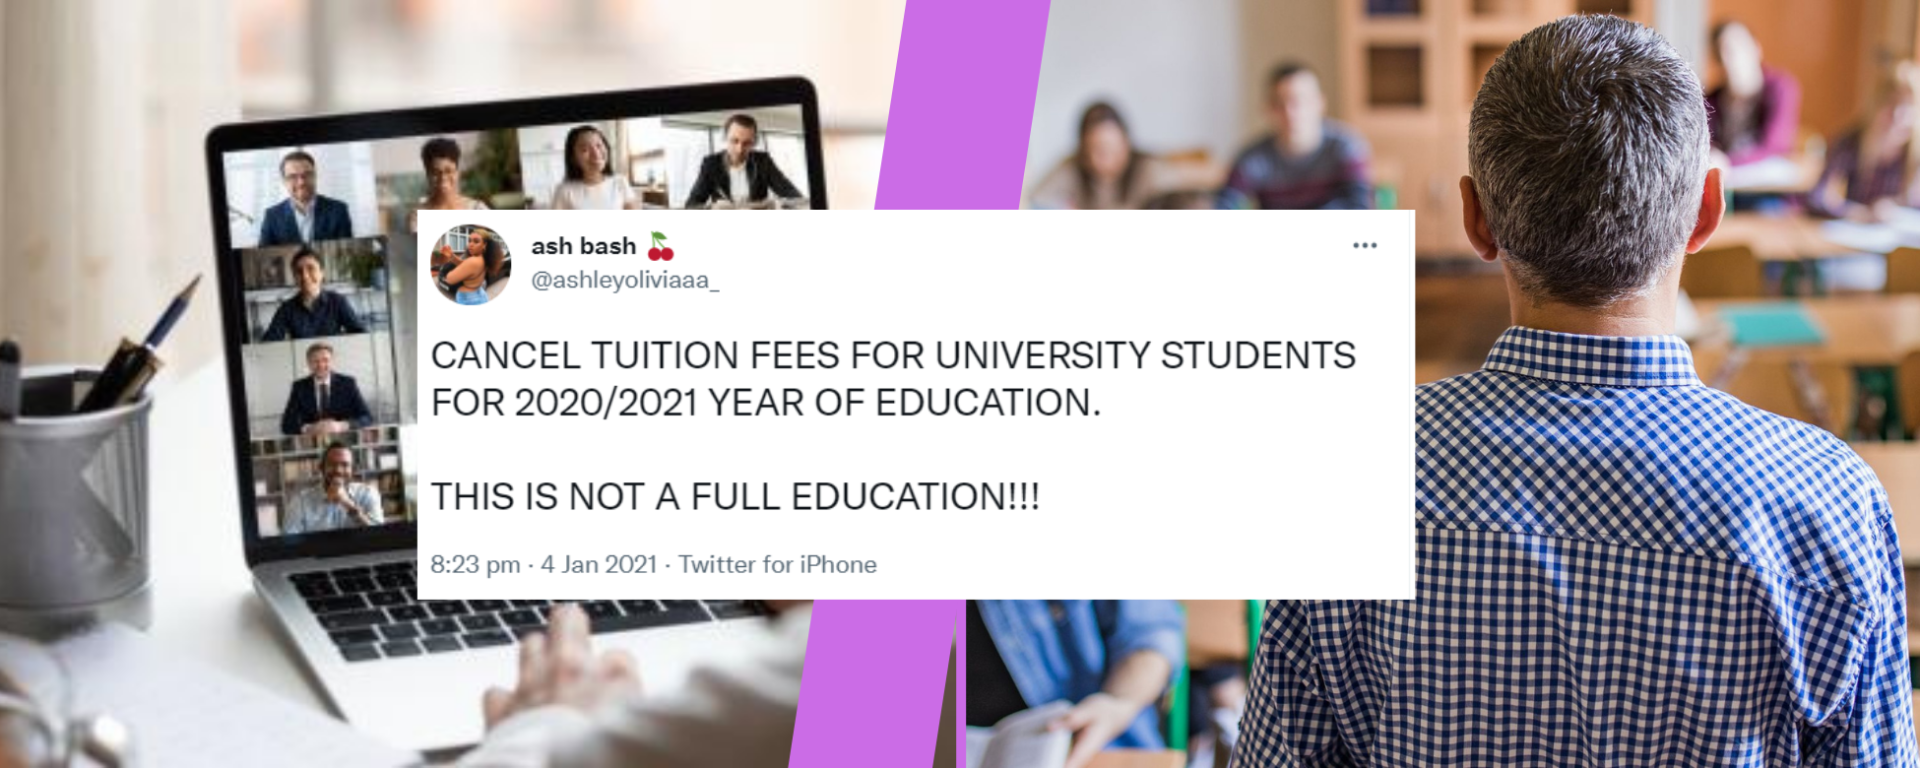 tuition fee refunds